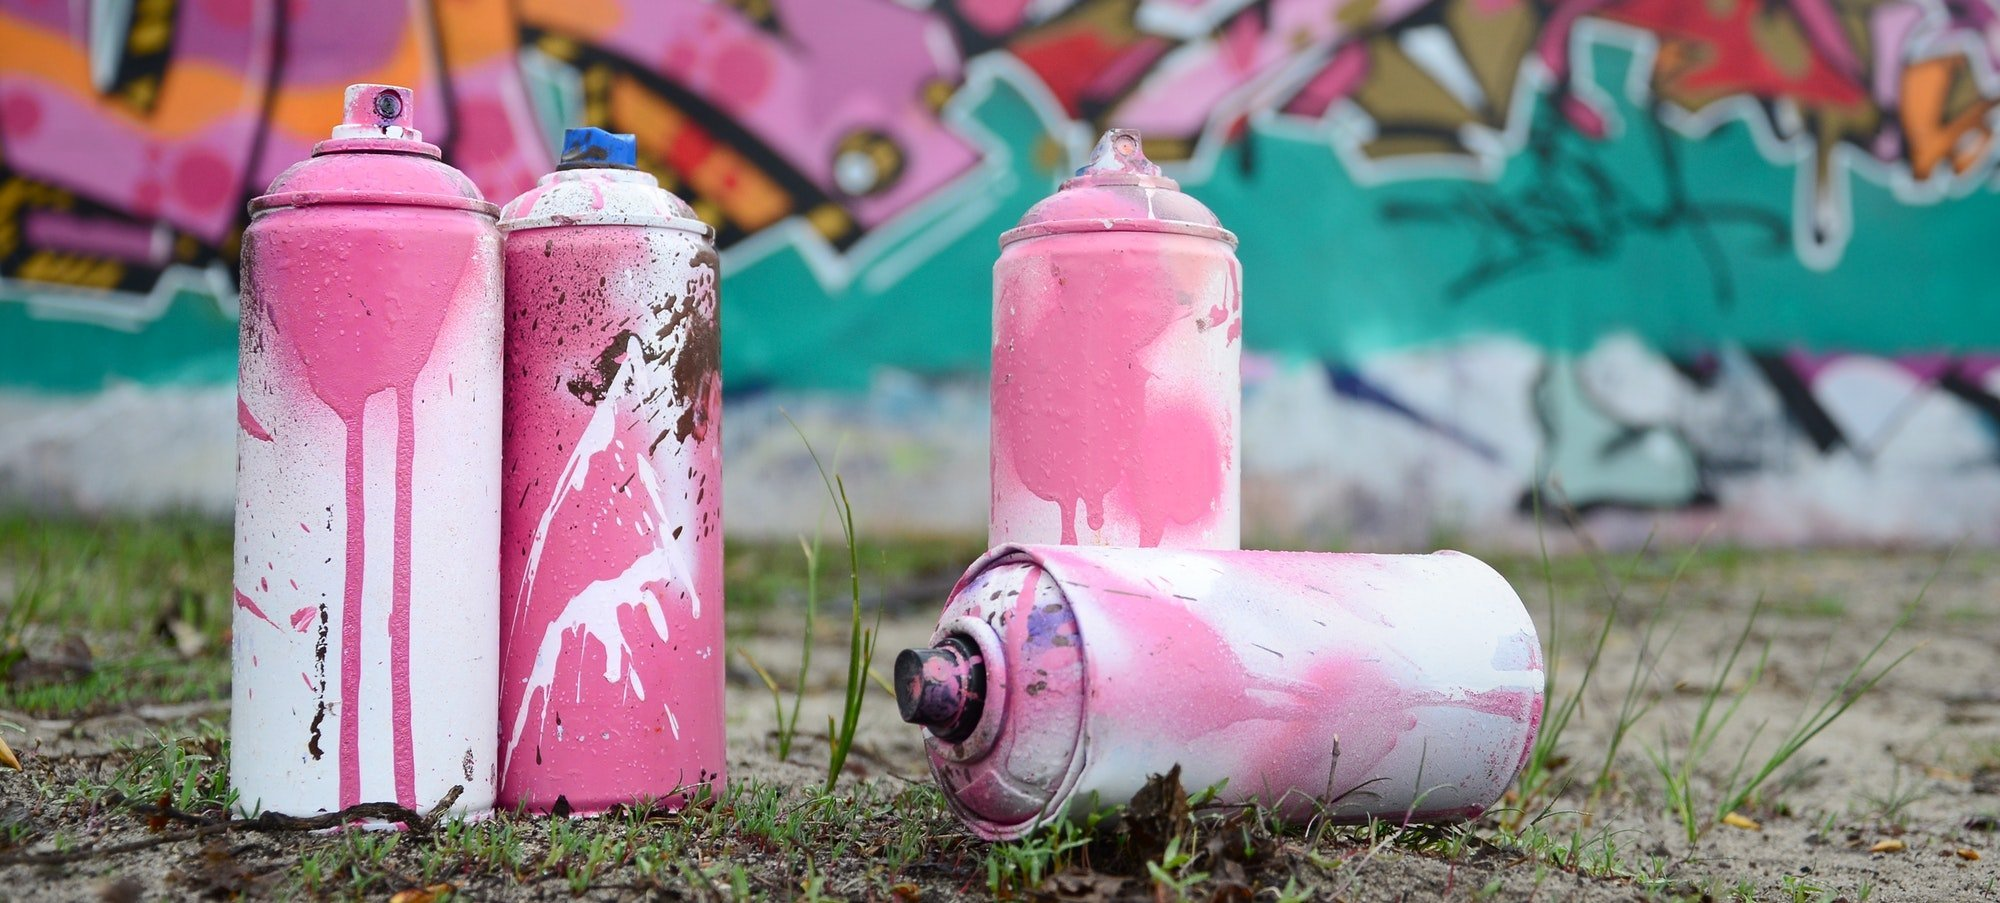 A few used paint cans lie on the ground near the wall with a beautiful graffiti painting in pink and